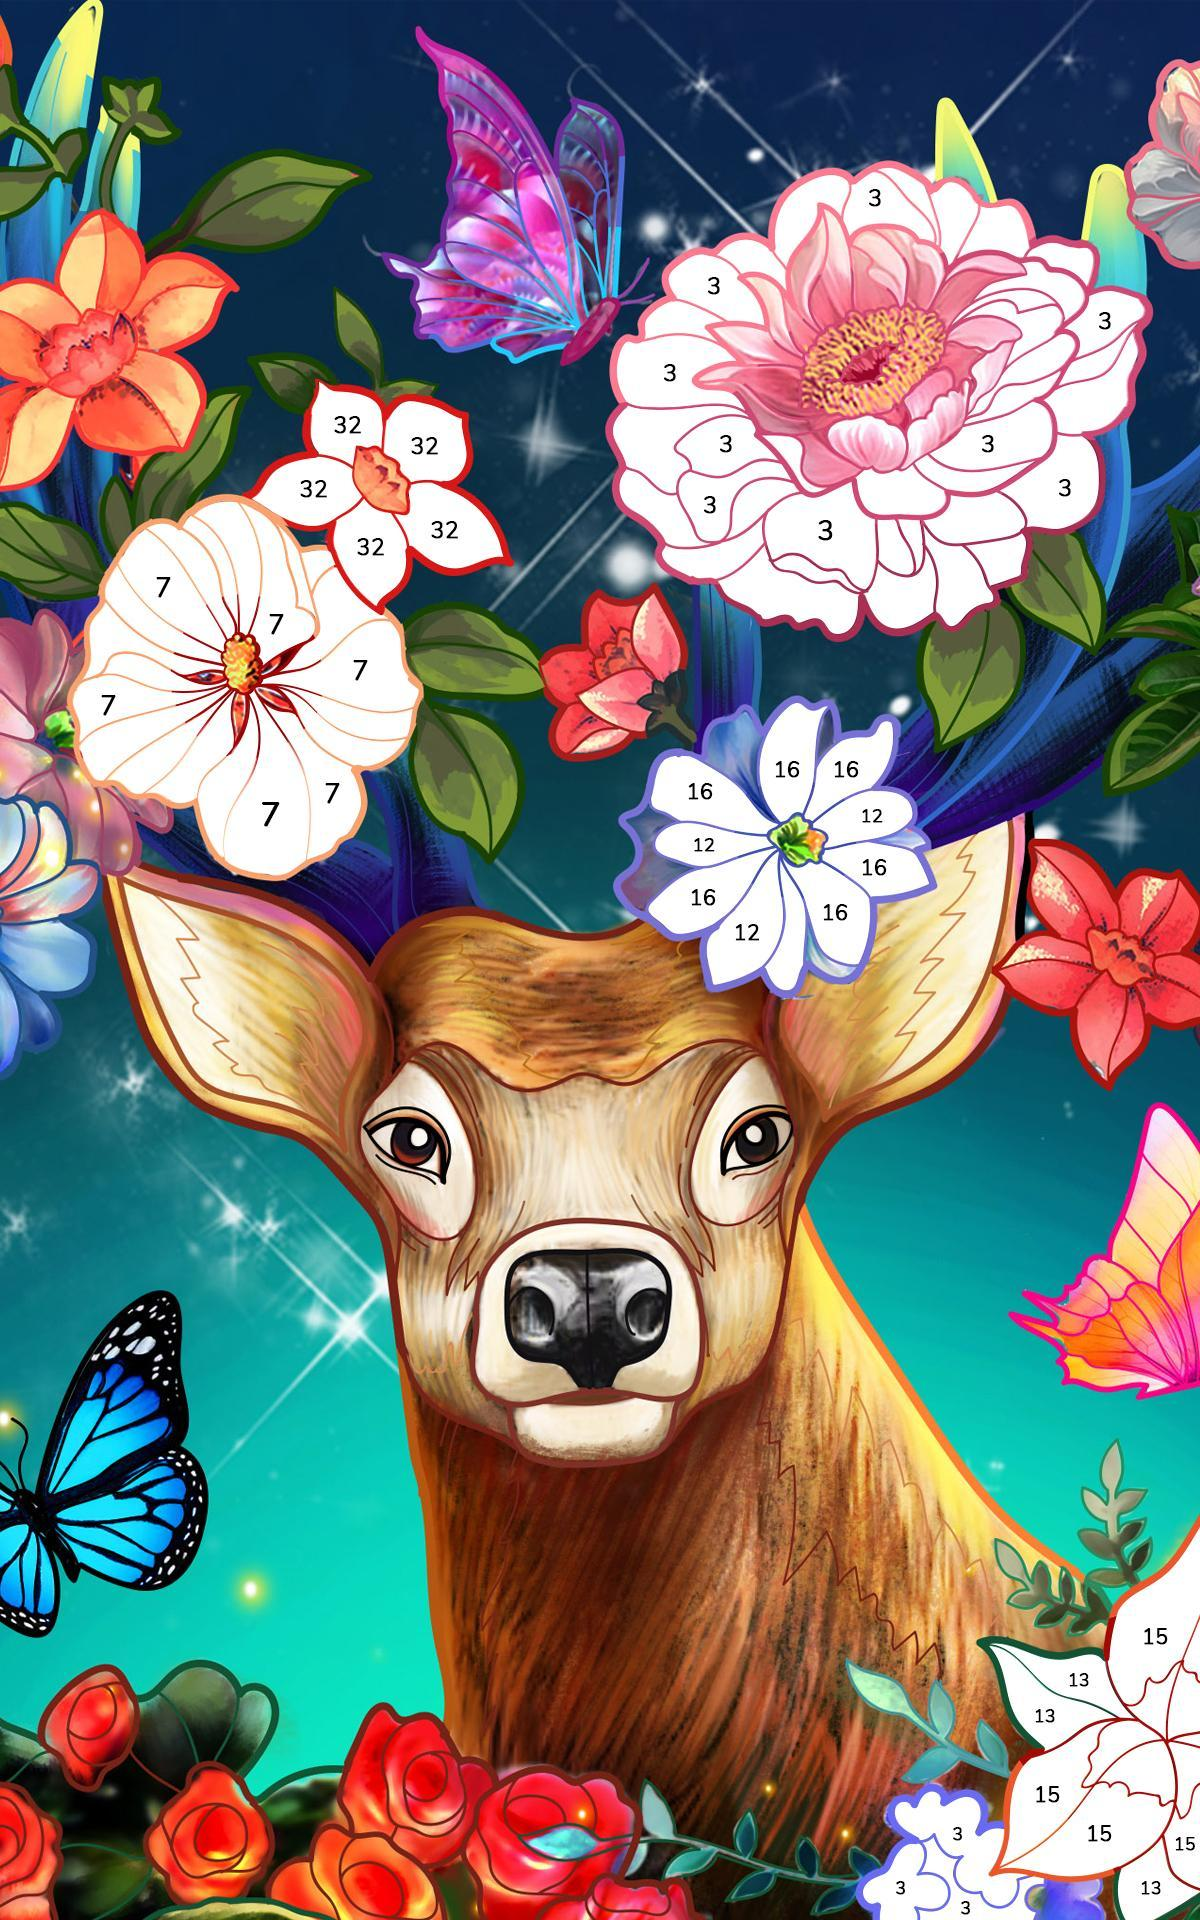 Bible Coloring Paint by Number, Free Bible Games 2.1.14 Screenshot 13